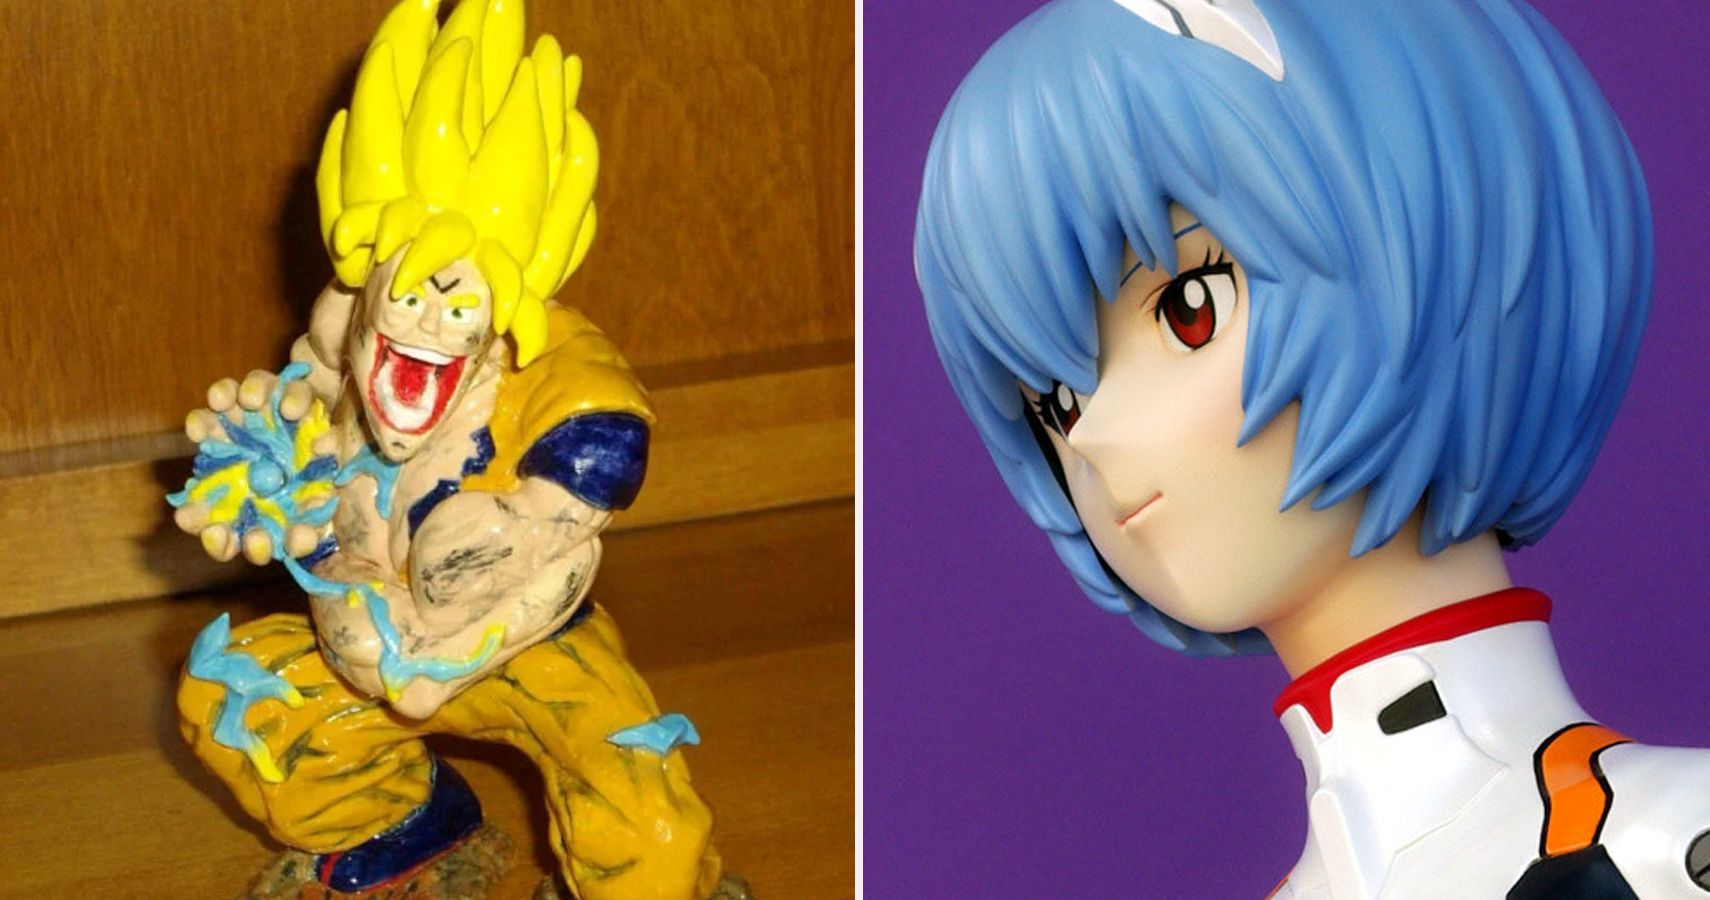 The 20 Lamest Anime Toys Of All Time (And 10 That Are Worth A Fortune)